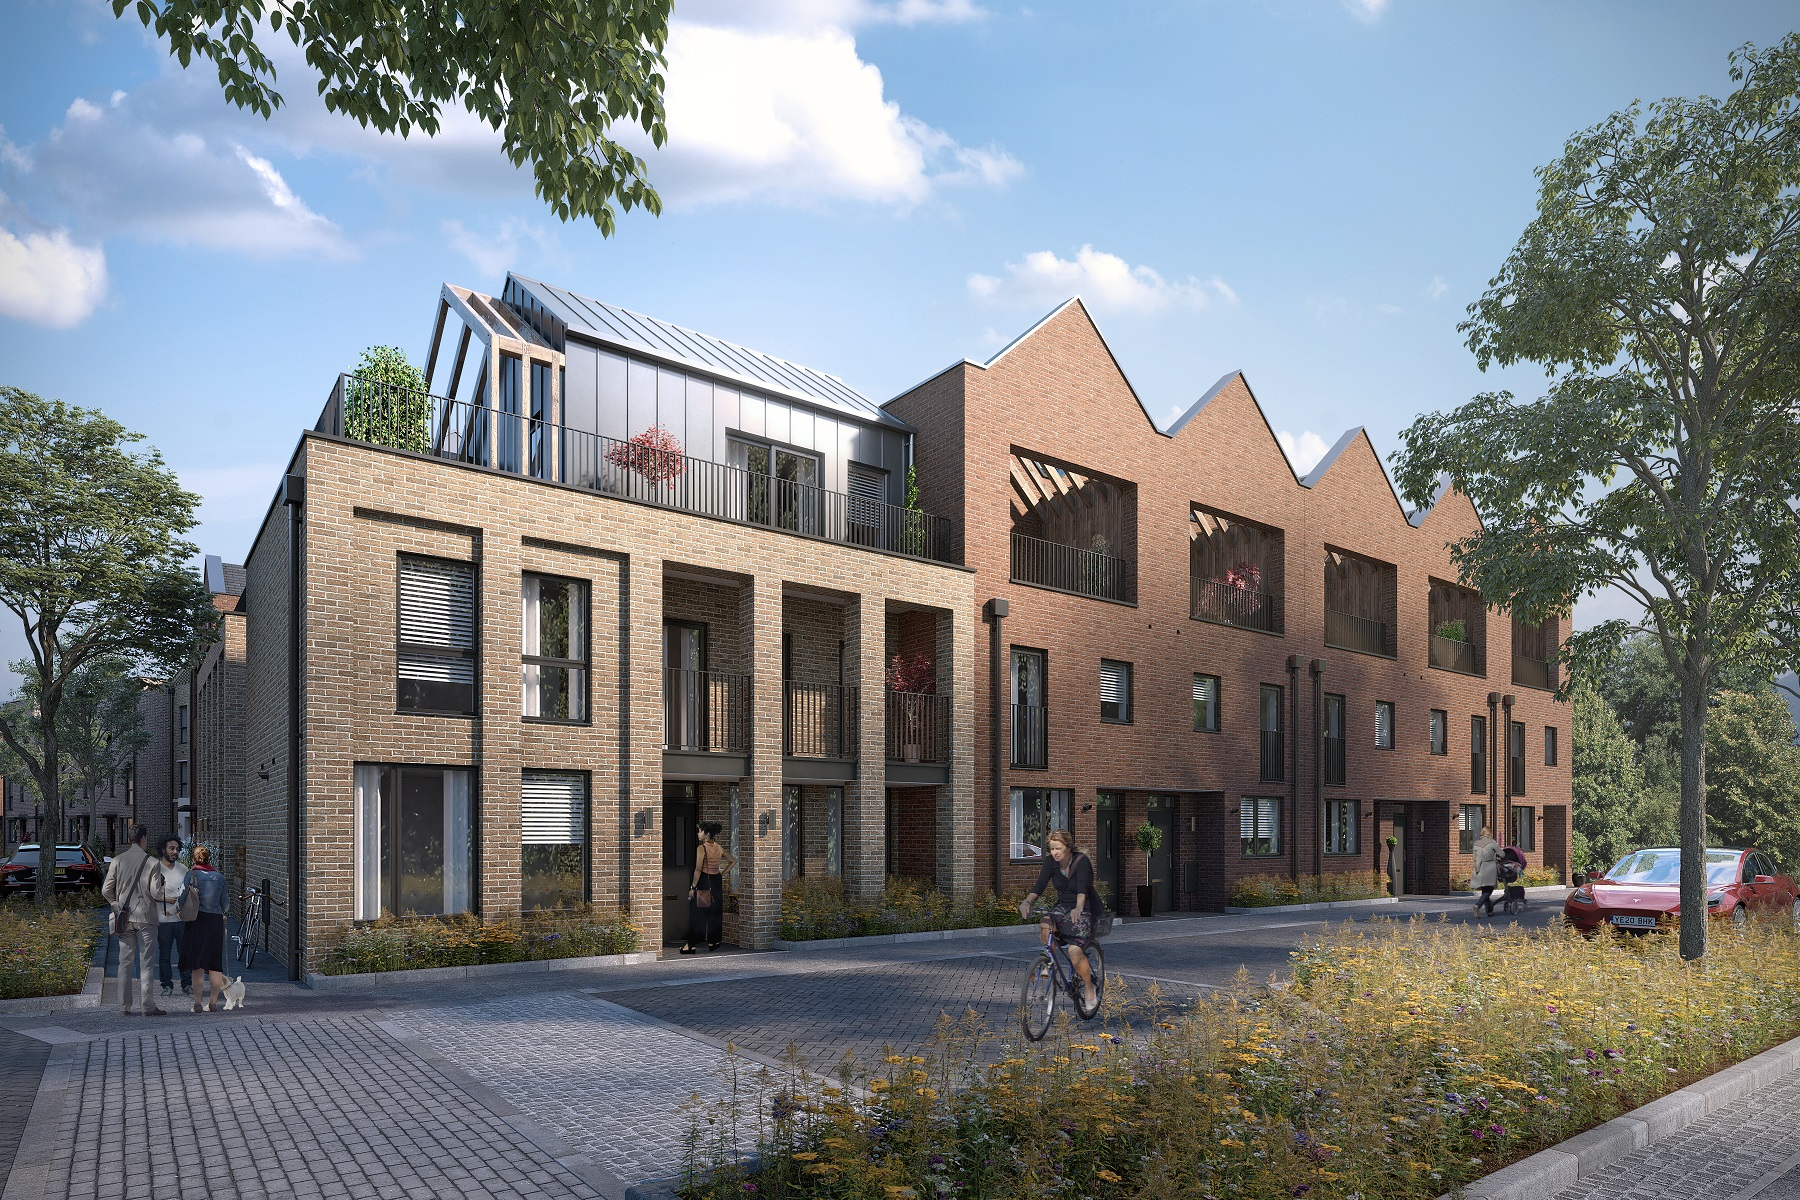 Townhouse style living at Trent Basin